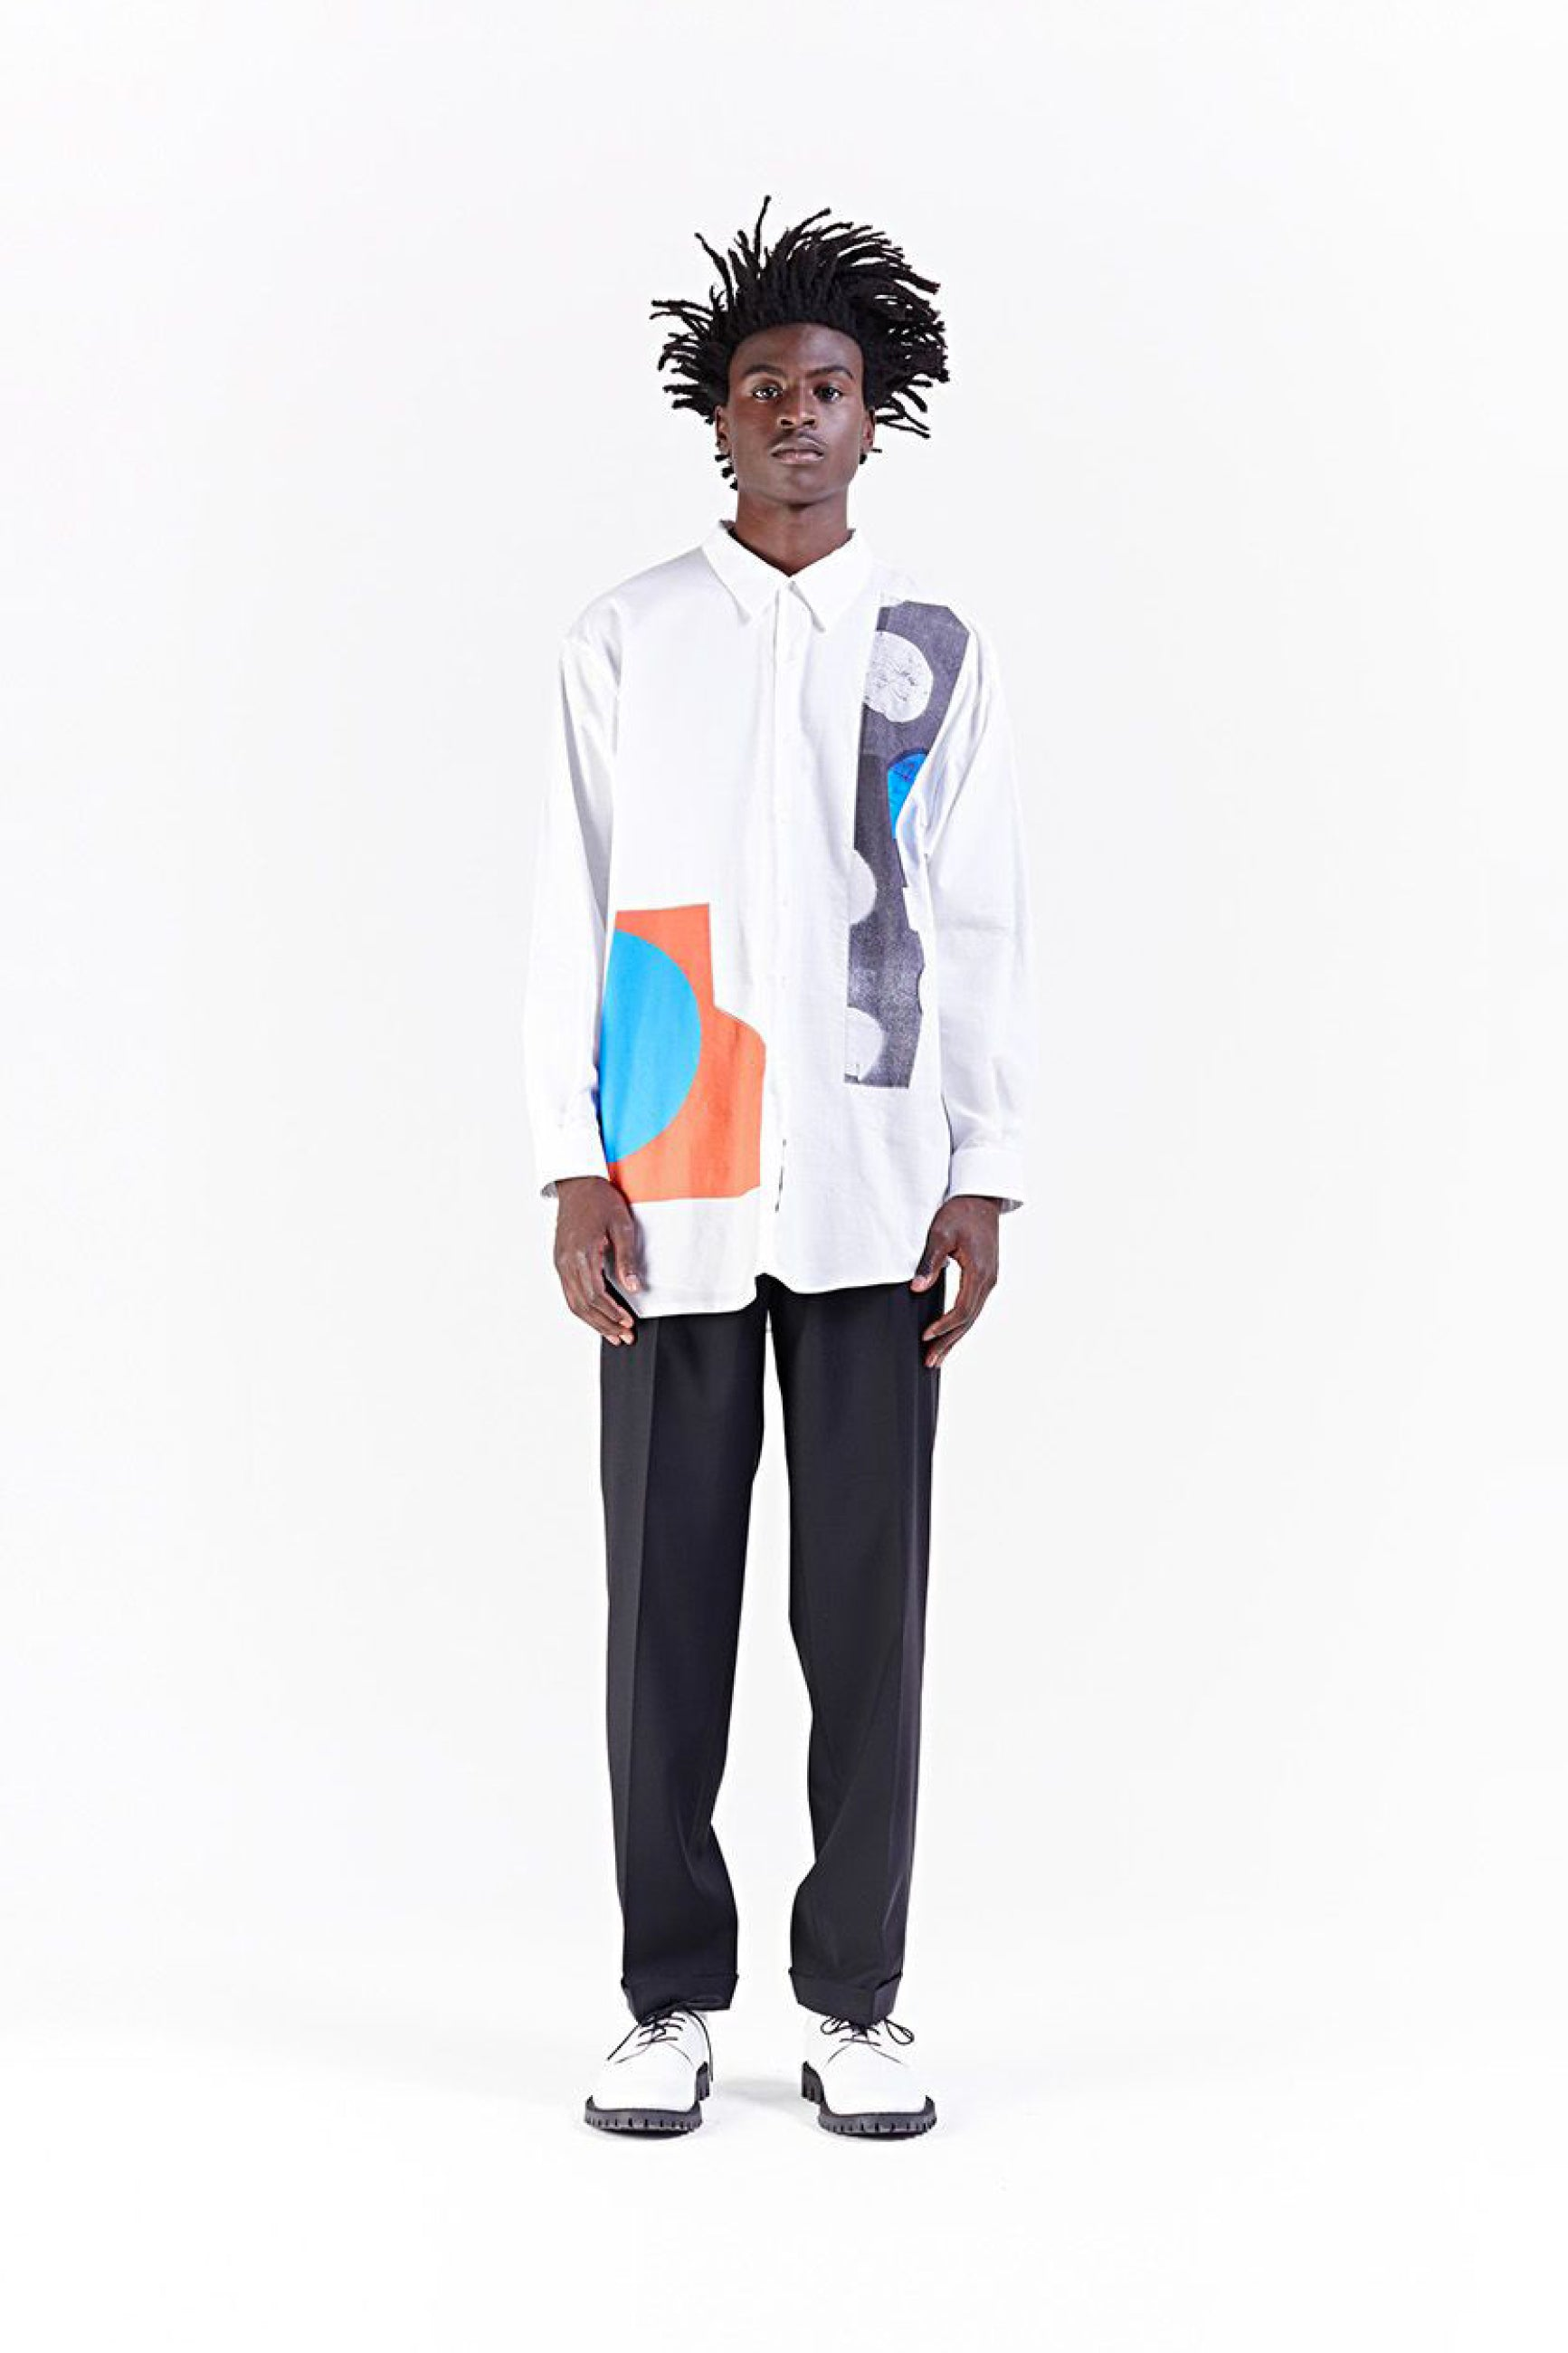 Etudes Shirt Linus Adrien Compostition